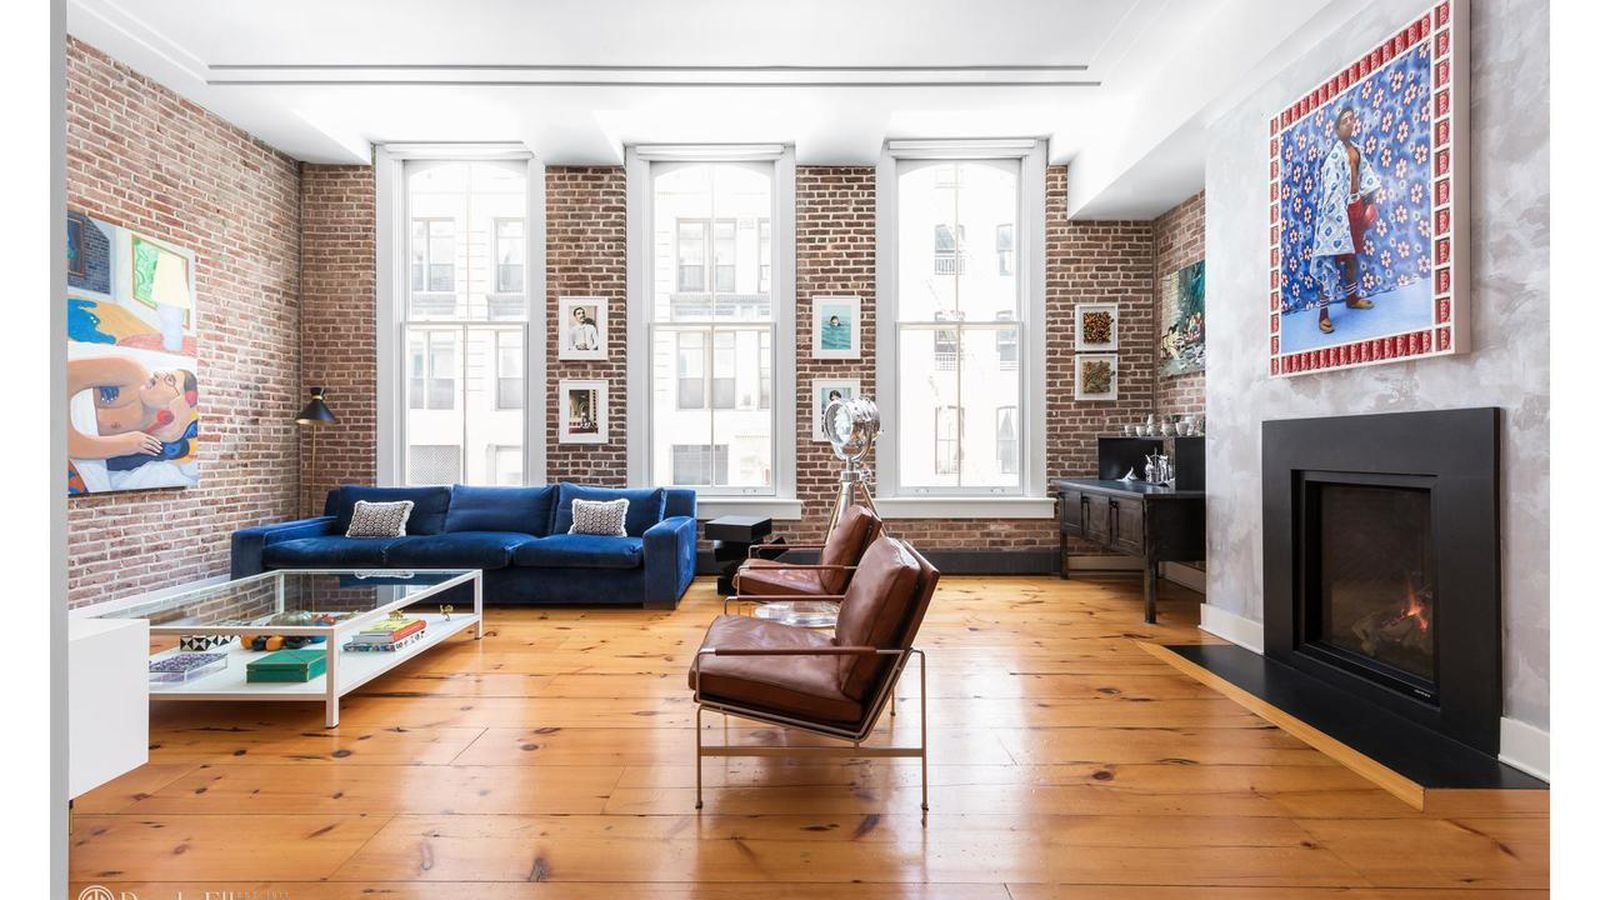 Gallerist s minimalist tribeca condo seeks 3 8m curbed ny for Homes for sale in tribeca